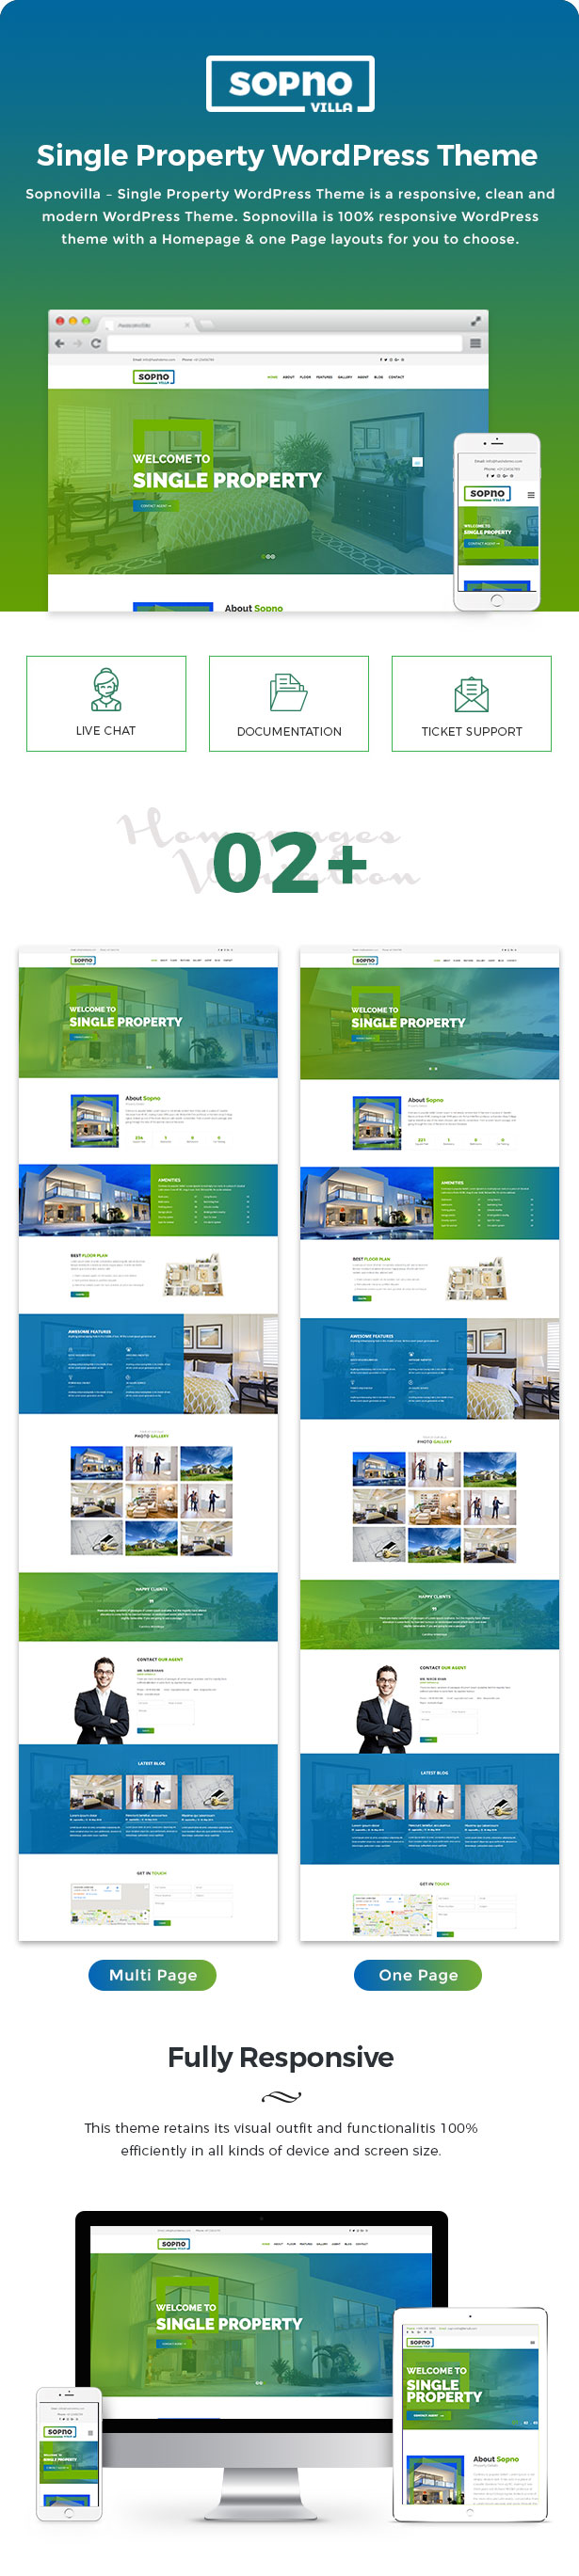 Sopnovilla – Single Property WordPress Theme - 1